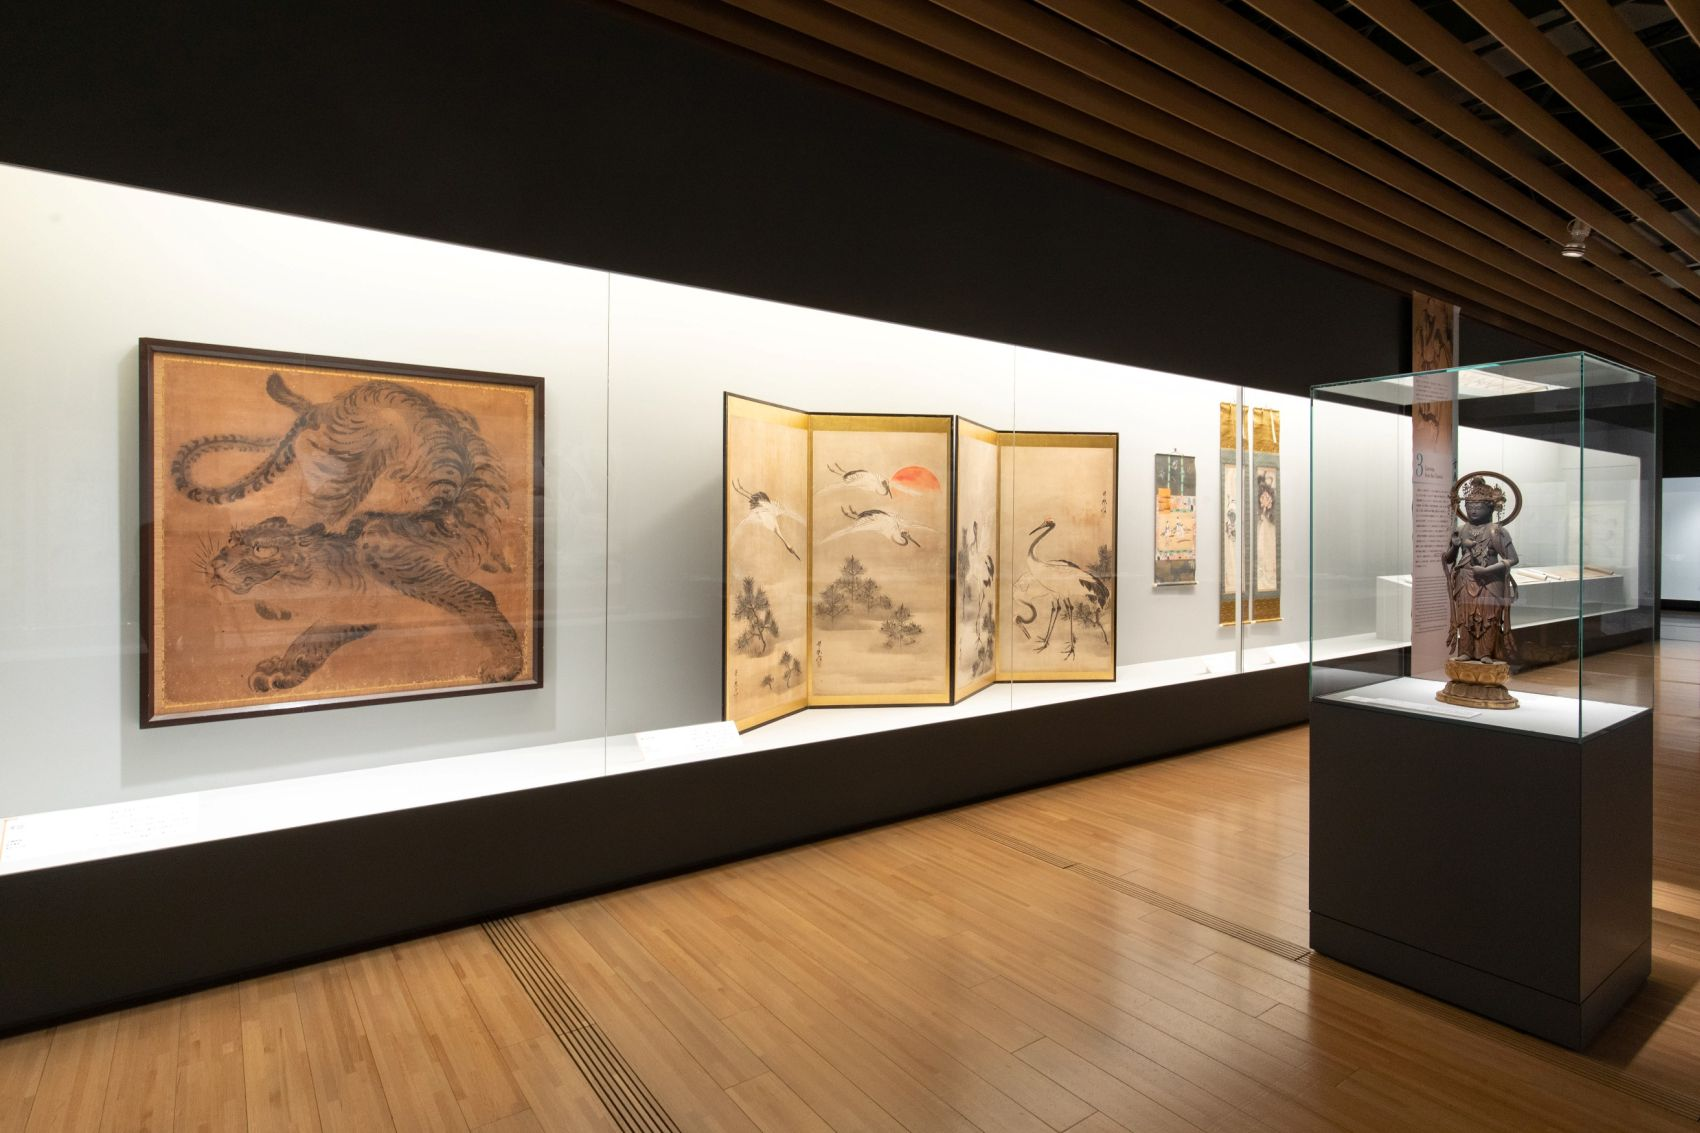 Kawanabe Kyosai: Rebellious Portrayer of the Wonderful and the Weird